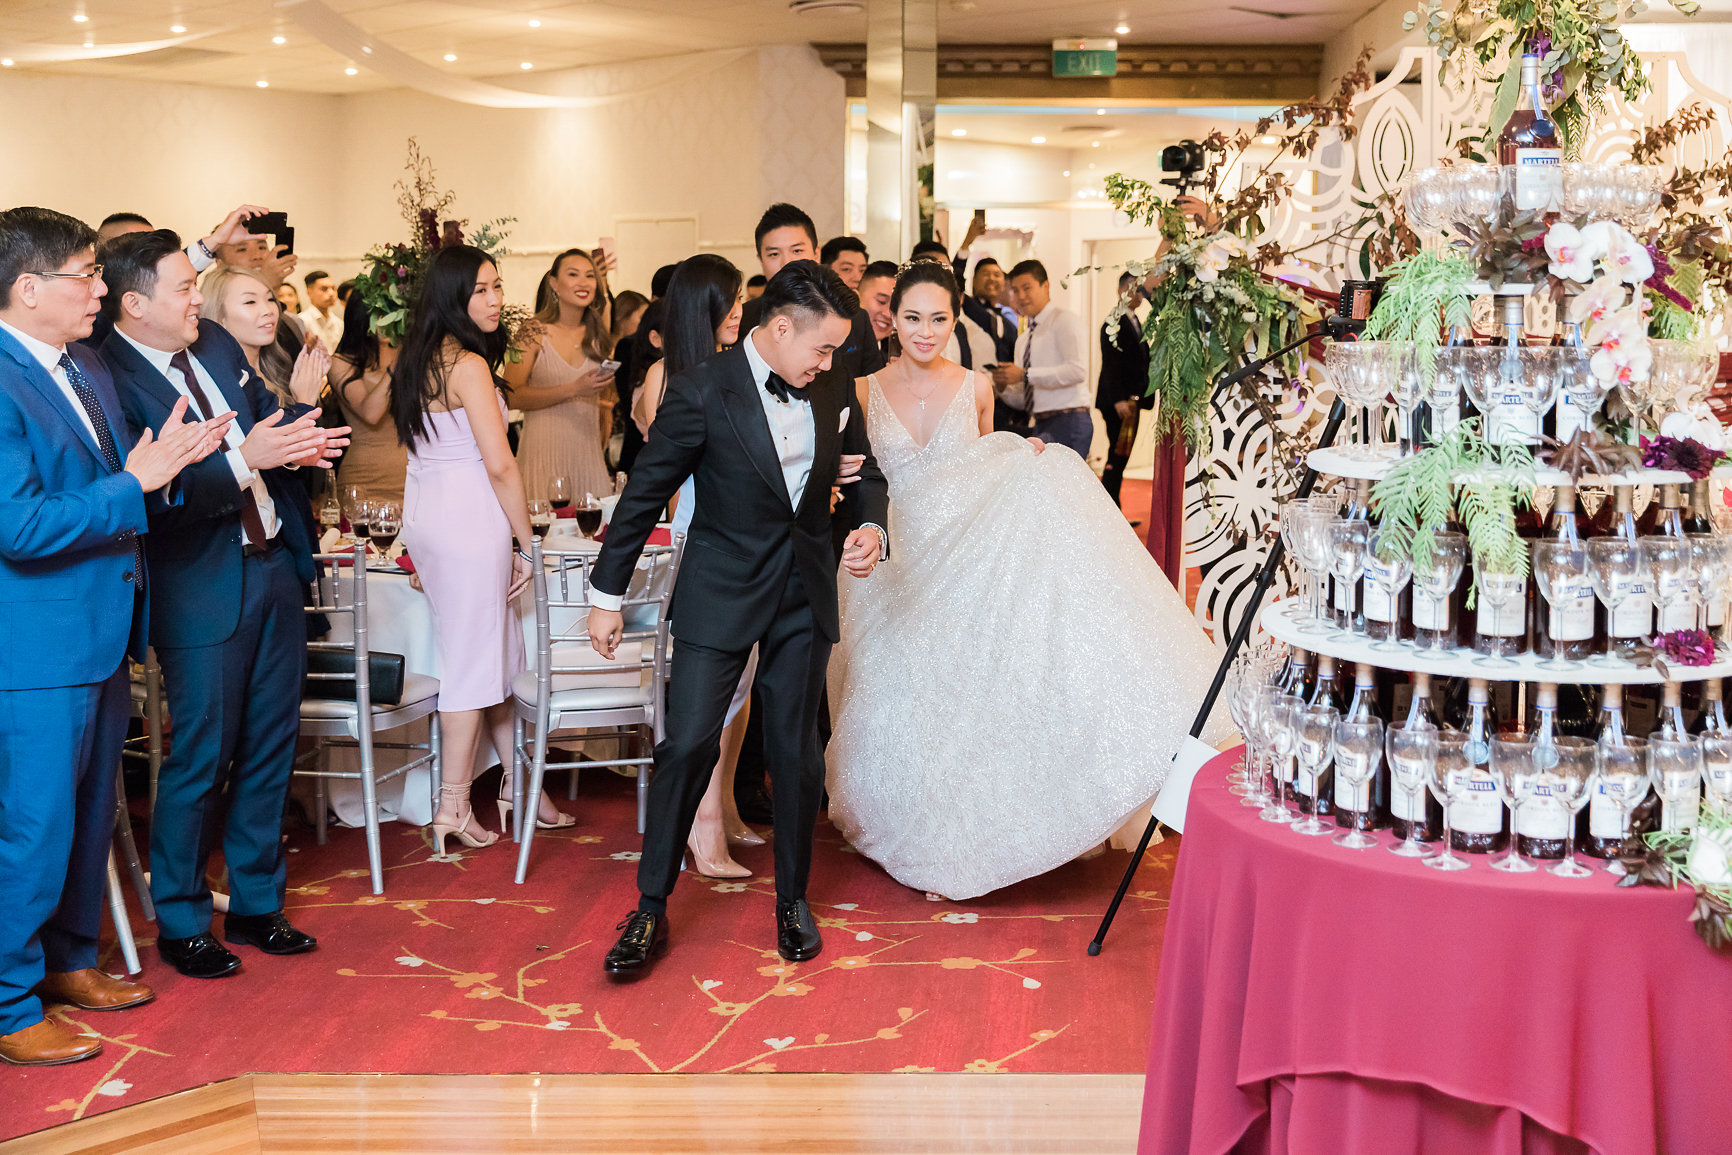 Sydney Wedding Photography Crystal Palace Function Centre - 0107.jpg